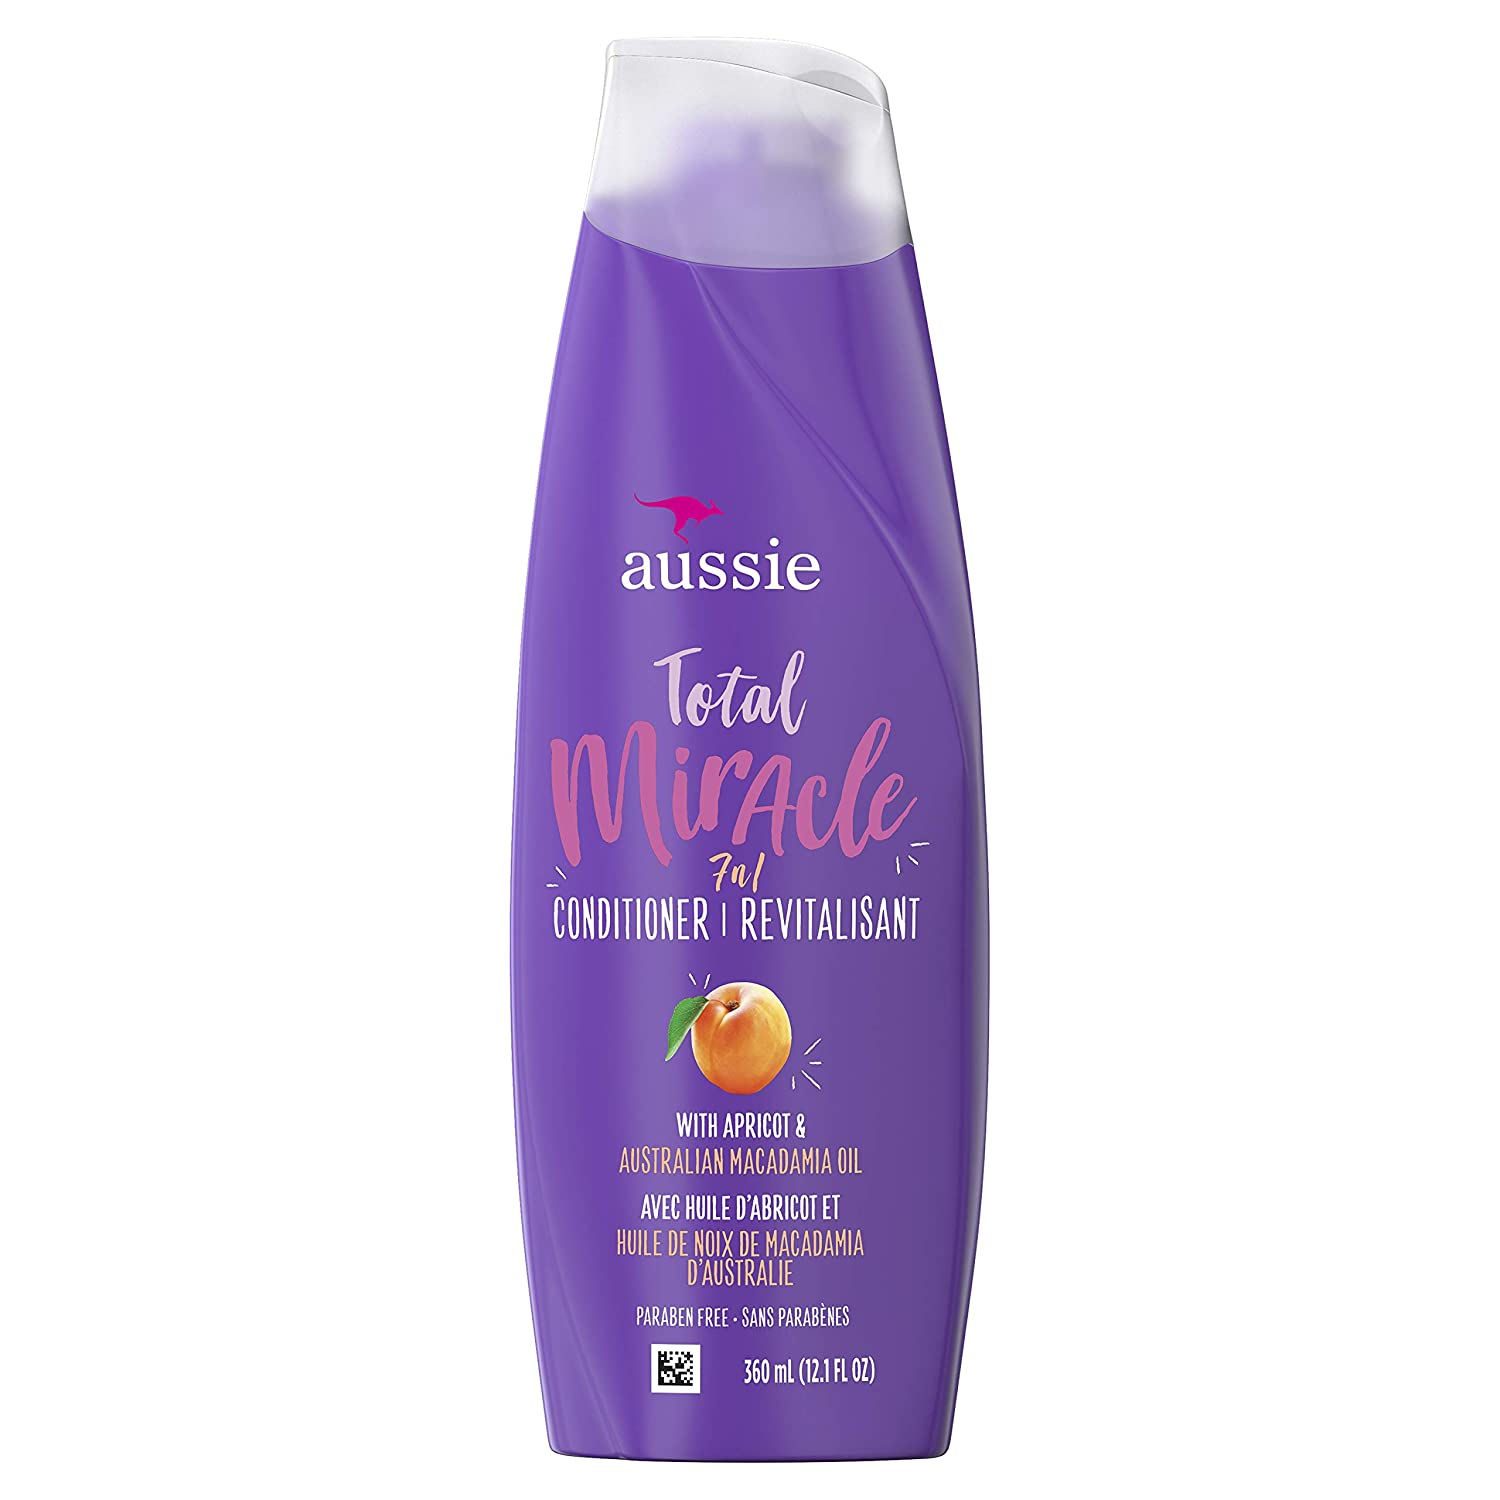 Aussie Paraben-Free Total Miracle Conditioner w/ Apricot For Hair Damage, 12.1 fl oz, Case of 6 (B019H3S9DK)